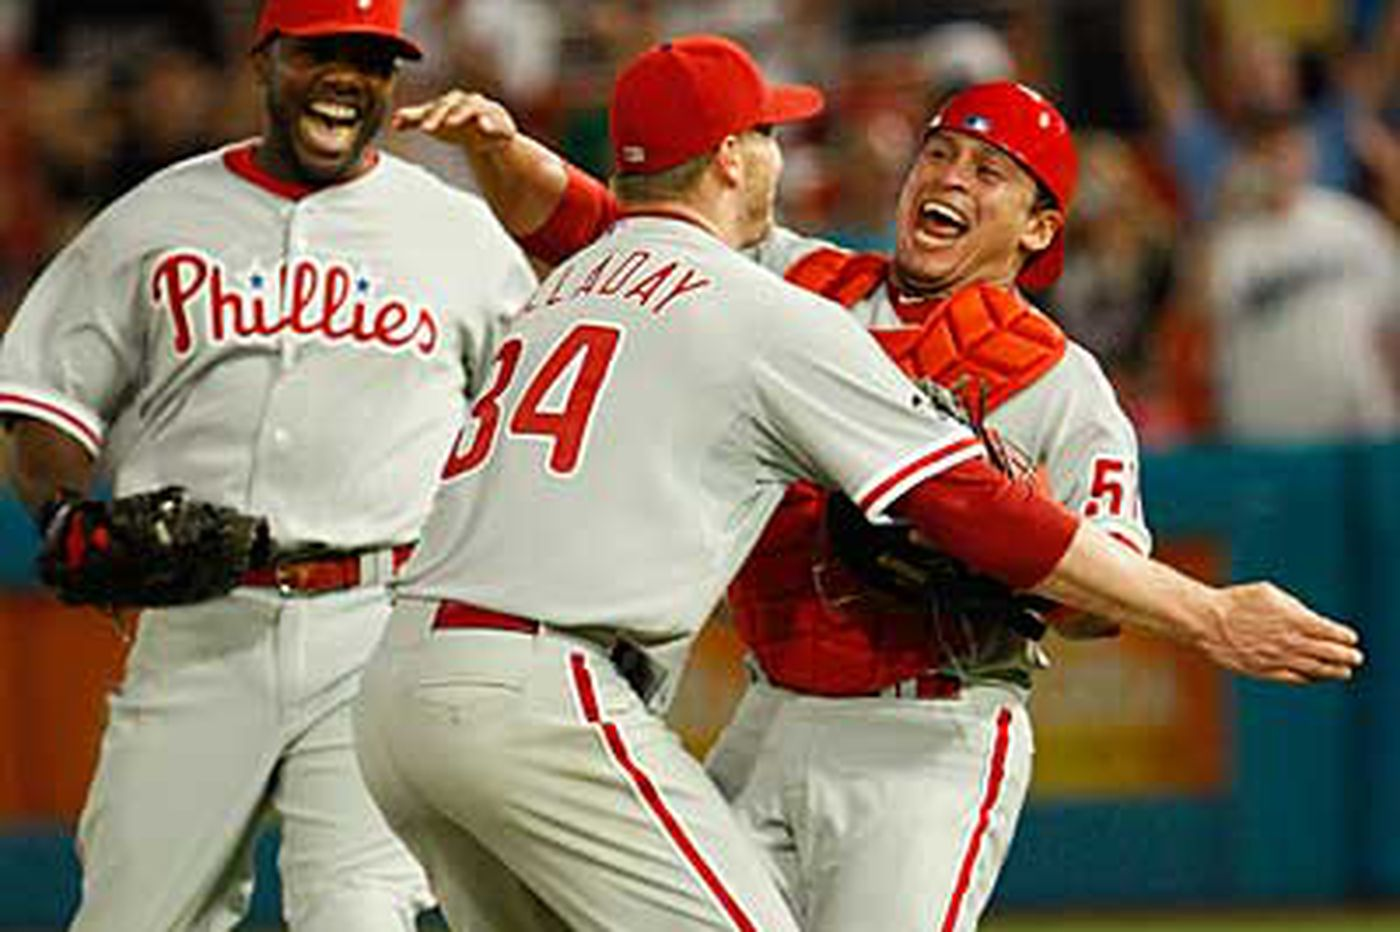 Roy Halladay throws perfect game Phillies vs. Miami Marlins